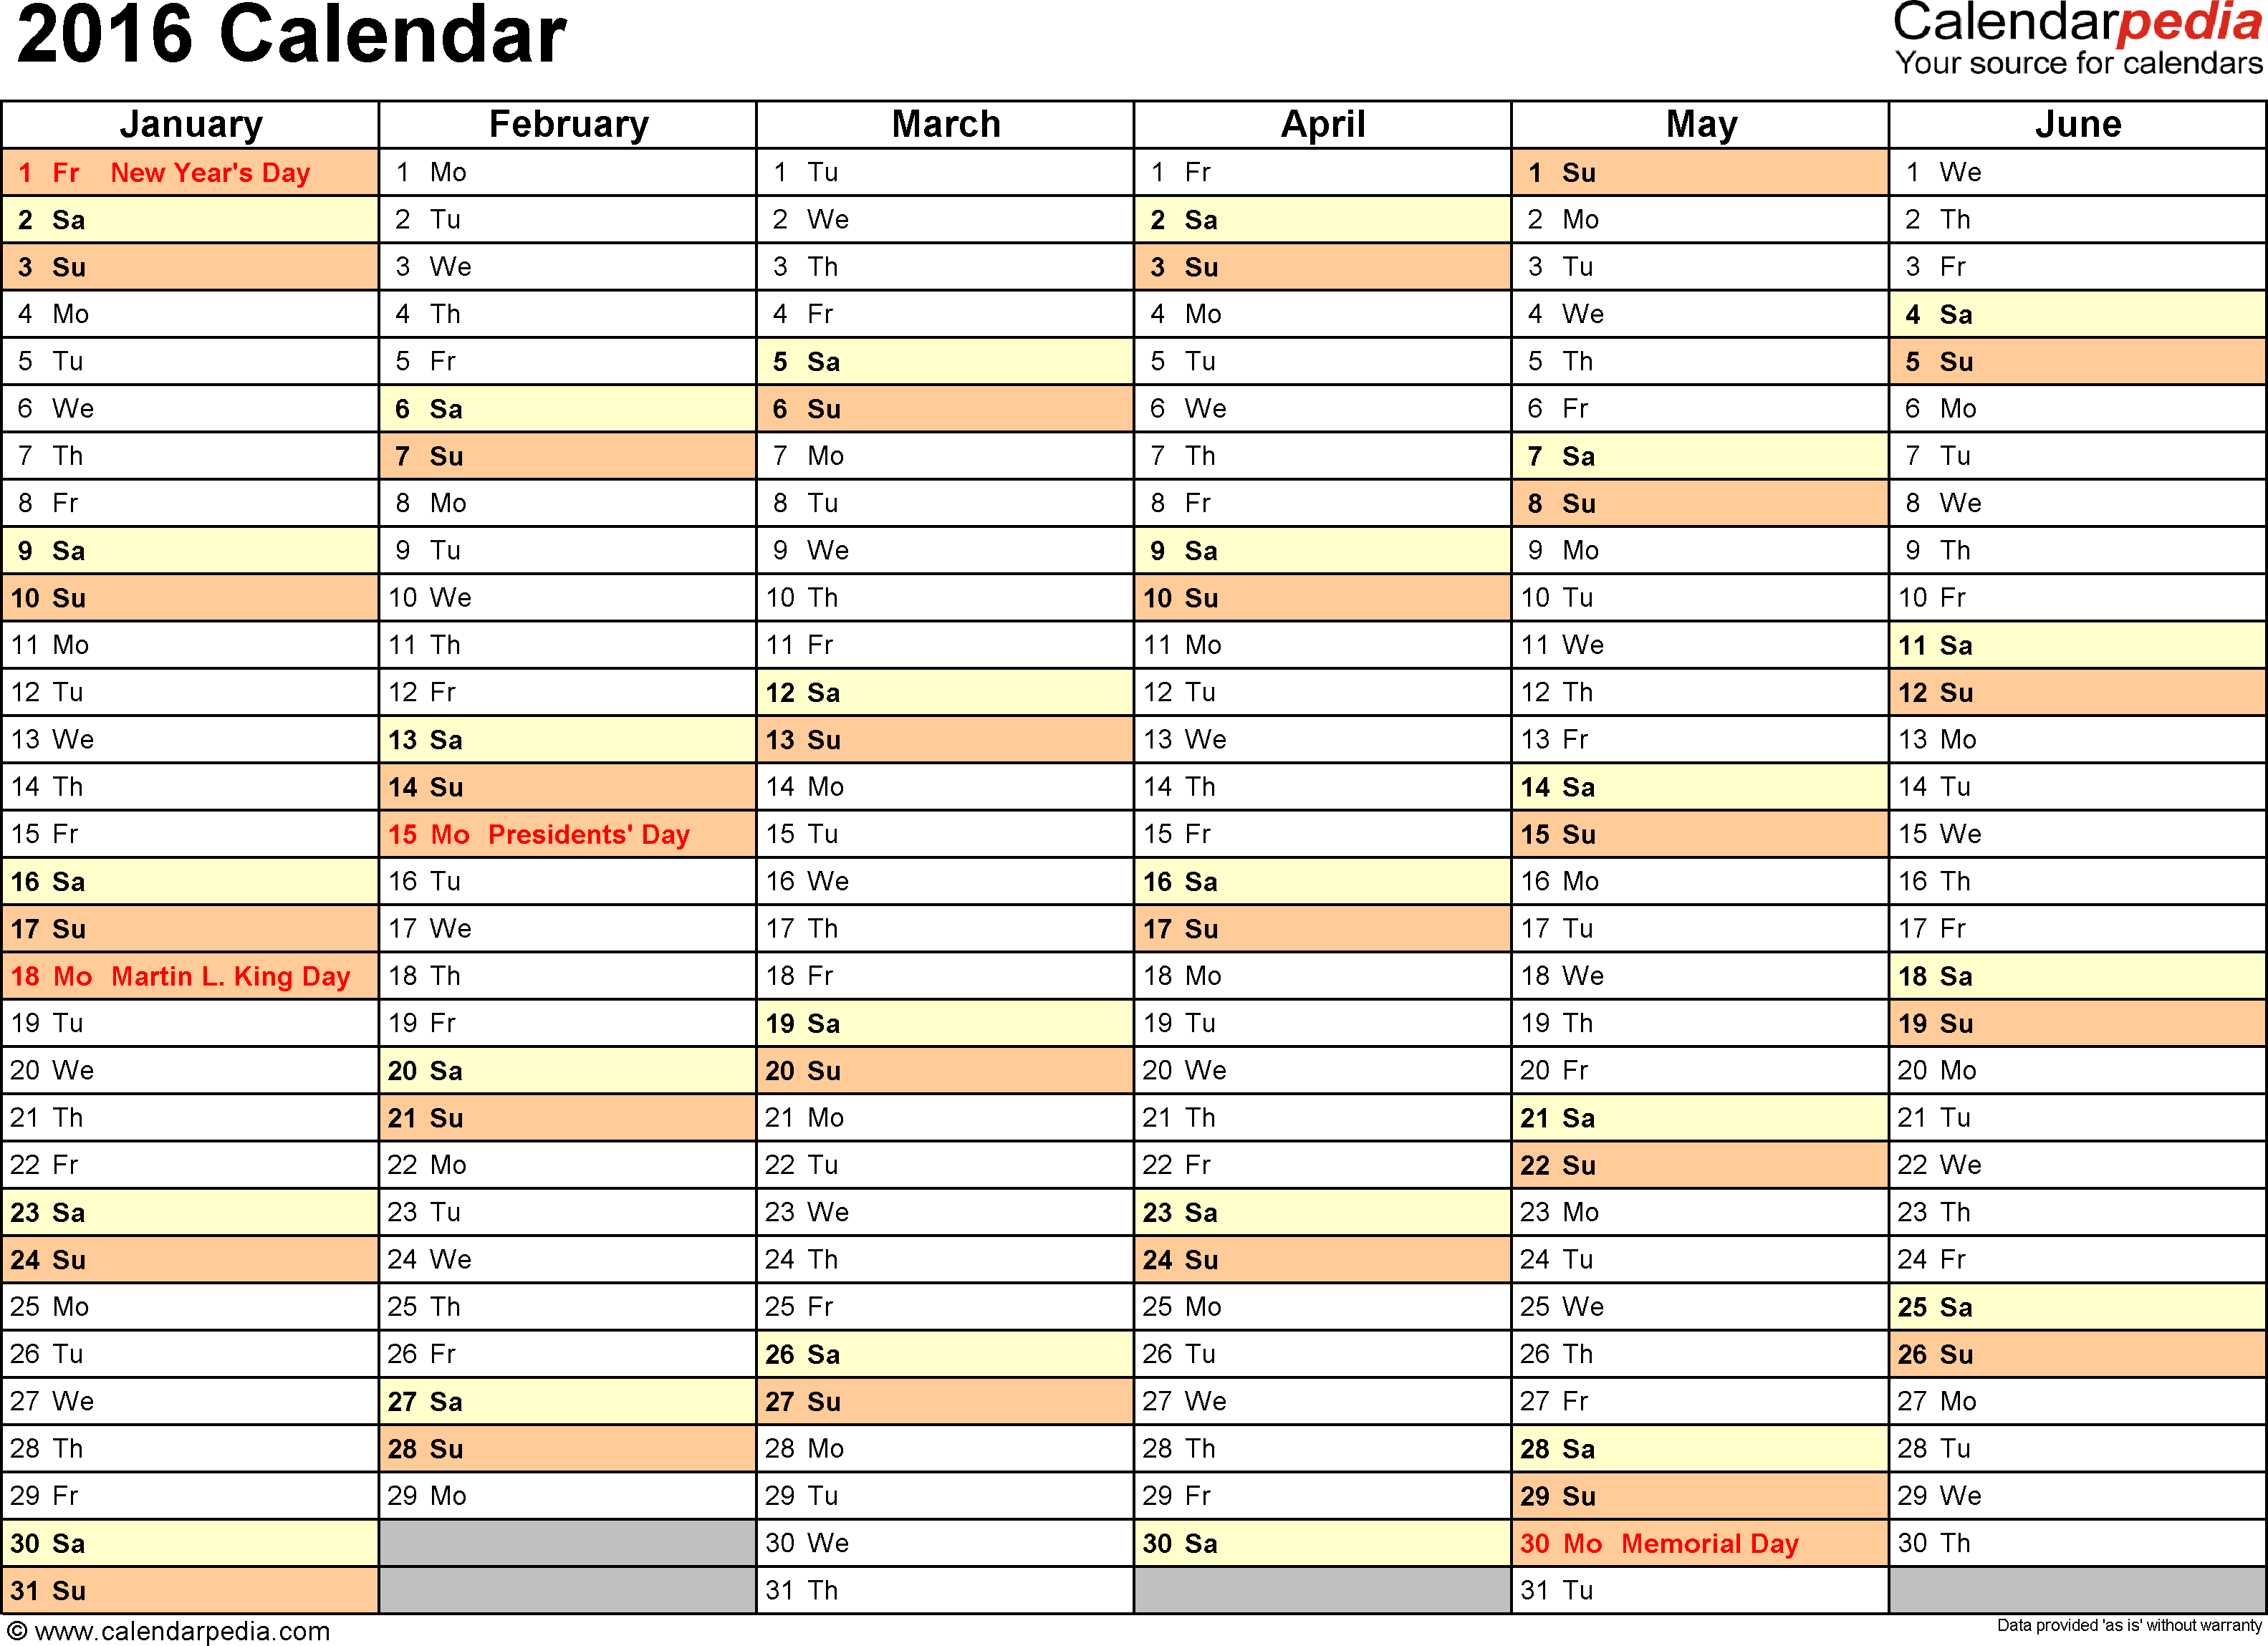 Ediblewildsus  Pleasing  Calendar  Download  Free Printable Excel Templates Xls With Hot Template   Calendar For Excel Months Horizontally  Pages Landscape Orientation With Beautiful Todays Date In Excel Also How To Print Address Labels From Excel In Addition Excel Maximum Rows And How To Create Excel Template As Well As Dropdown In Excel  Additionally Brackets In Excel From Calendarpediacom With Ediblewildsus  Hot  Calendar  Download  Free Printable Excel Templates Xls With Beautiful Template   Calendar For Excel Months Horizontally  Pages Landscape Orientation And Pleasing Todays Date In Excel Also How To Print Address Labels From Excel In Addition Excel Maximum Rows From Calendarpediacom